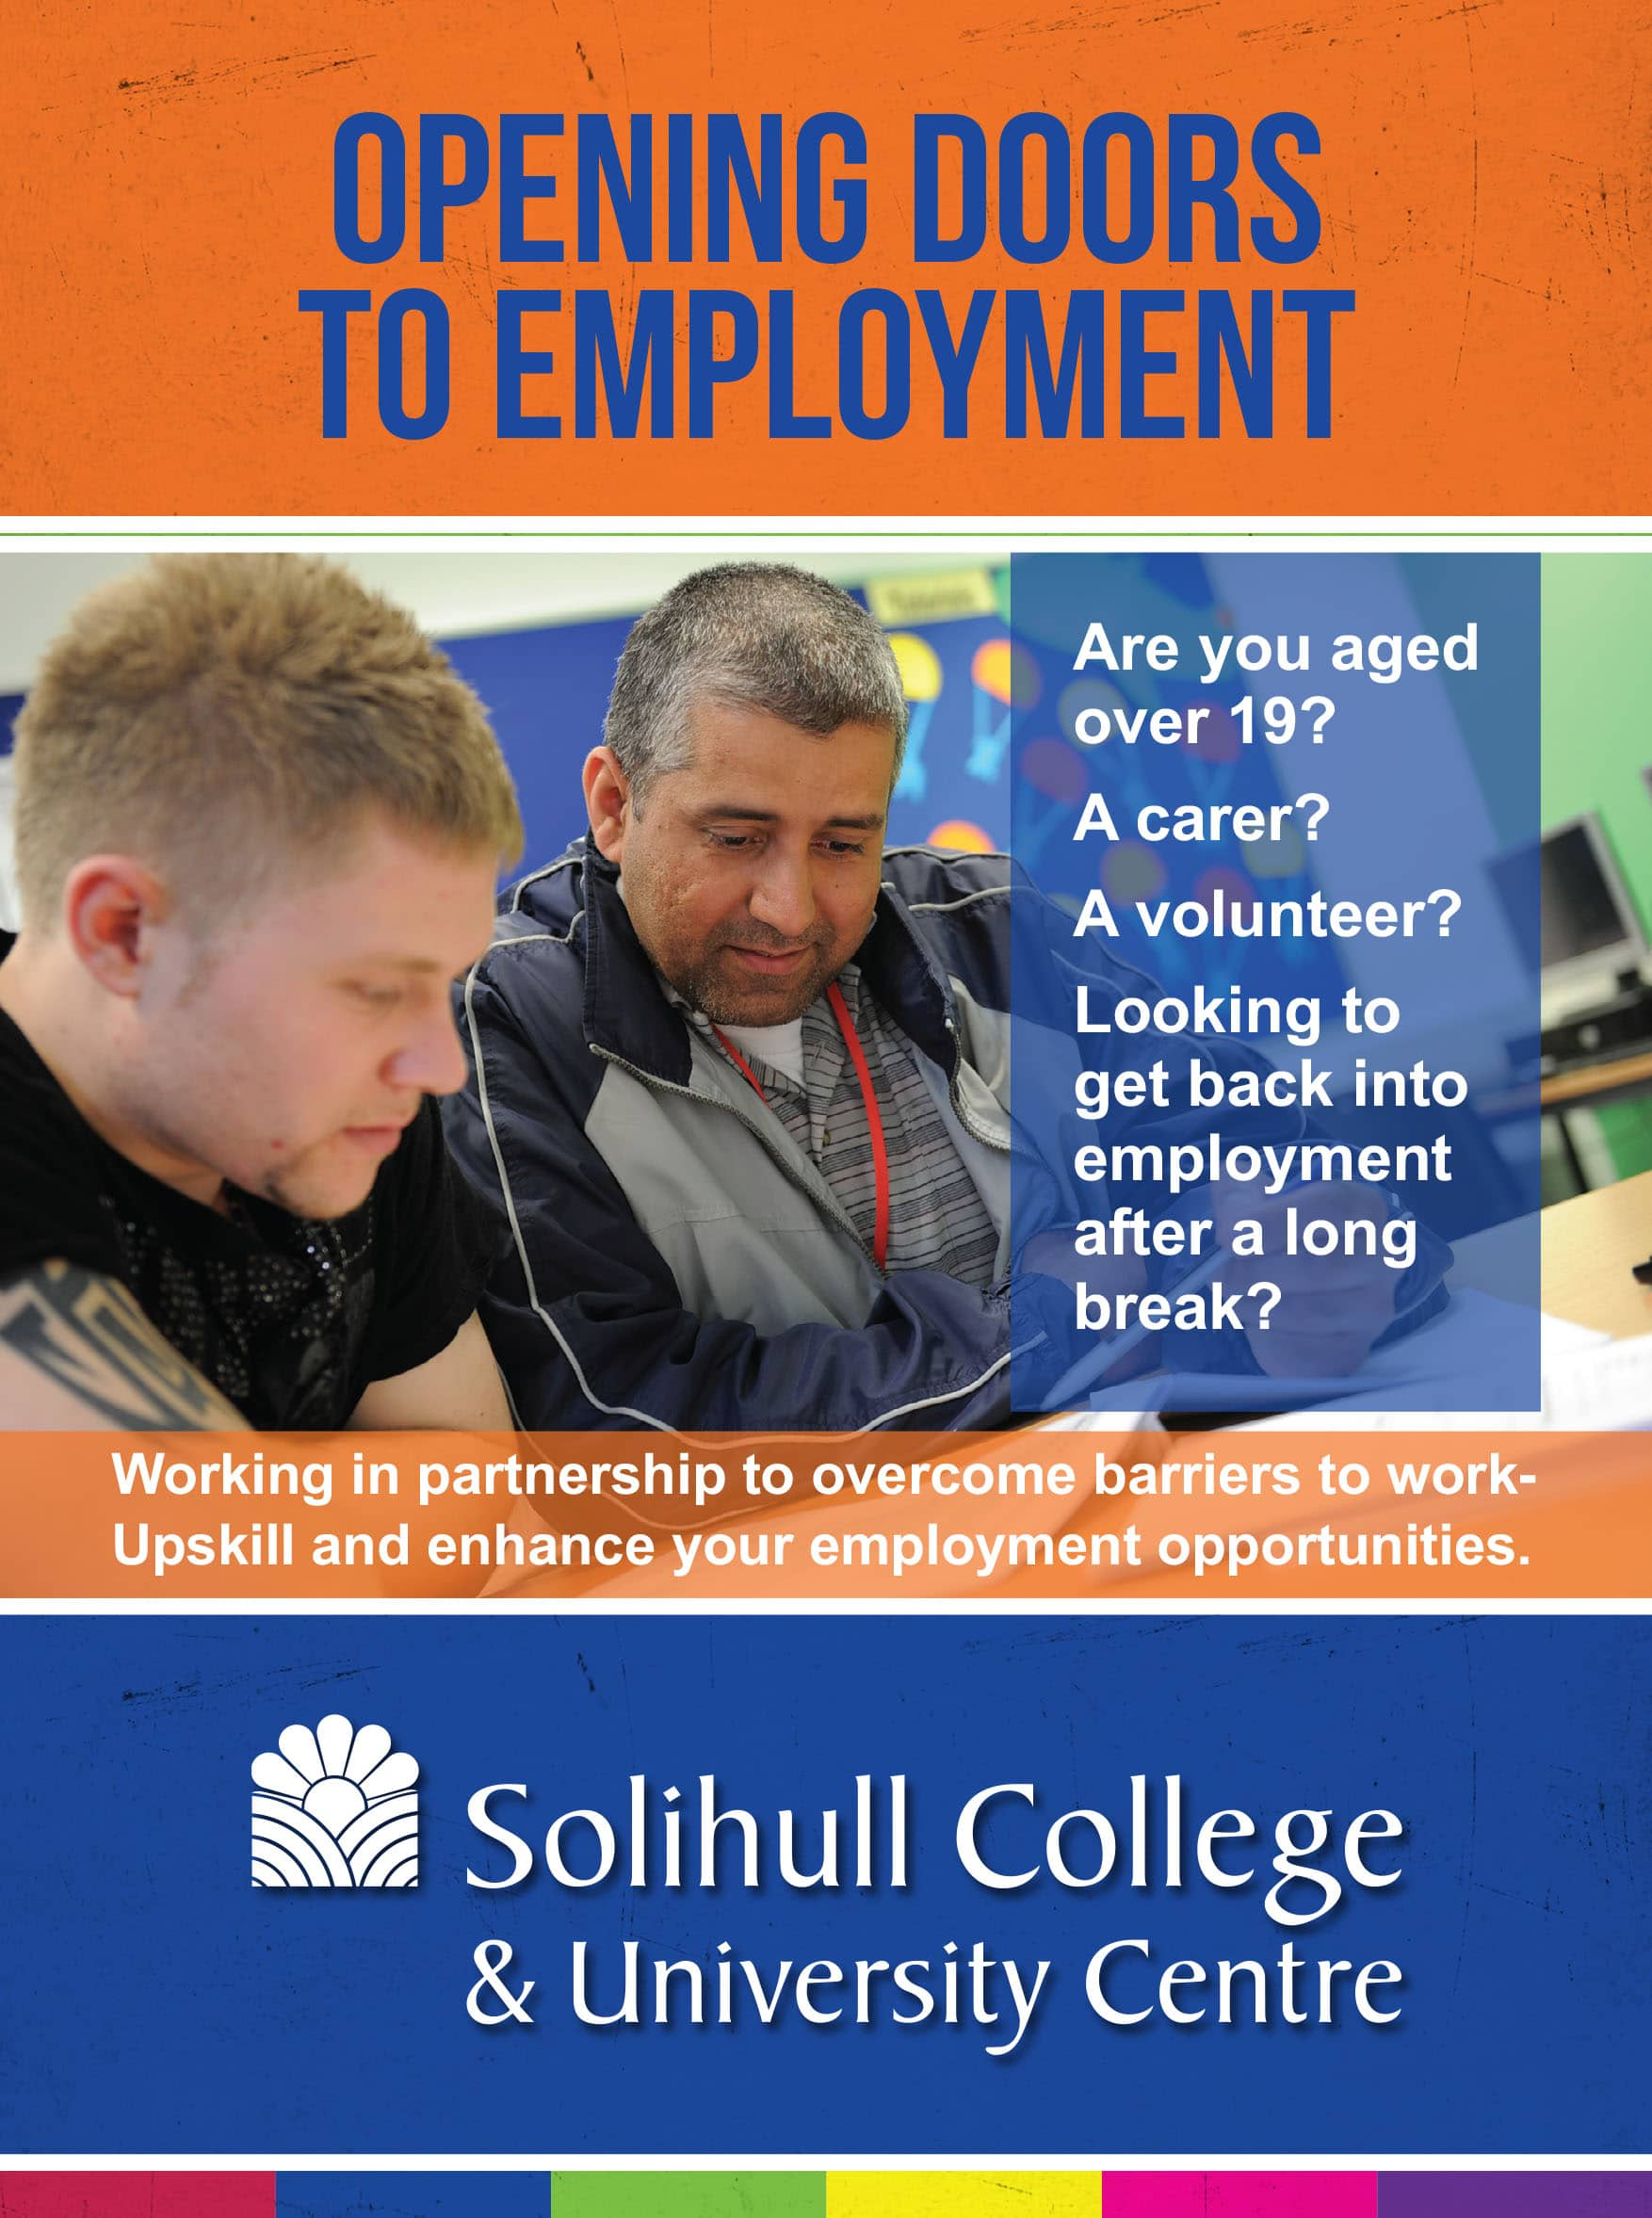 Shorts courses for the unemployed image